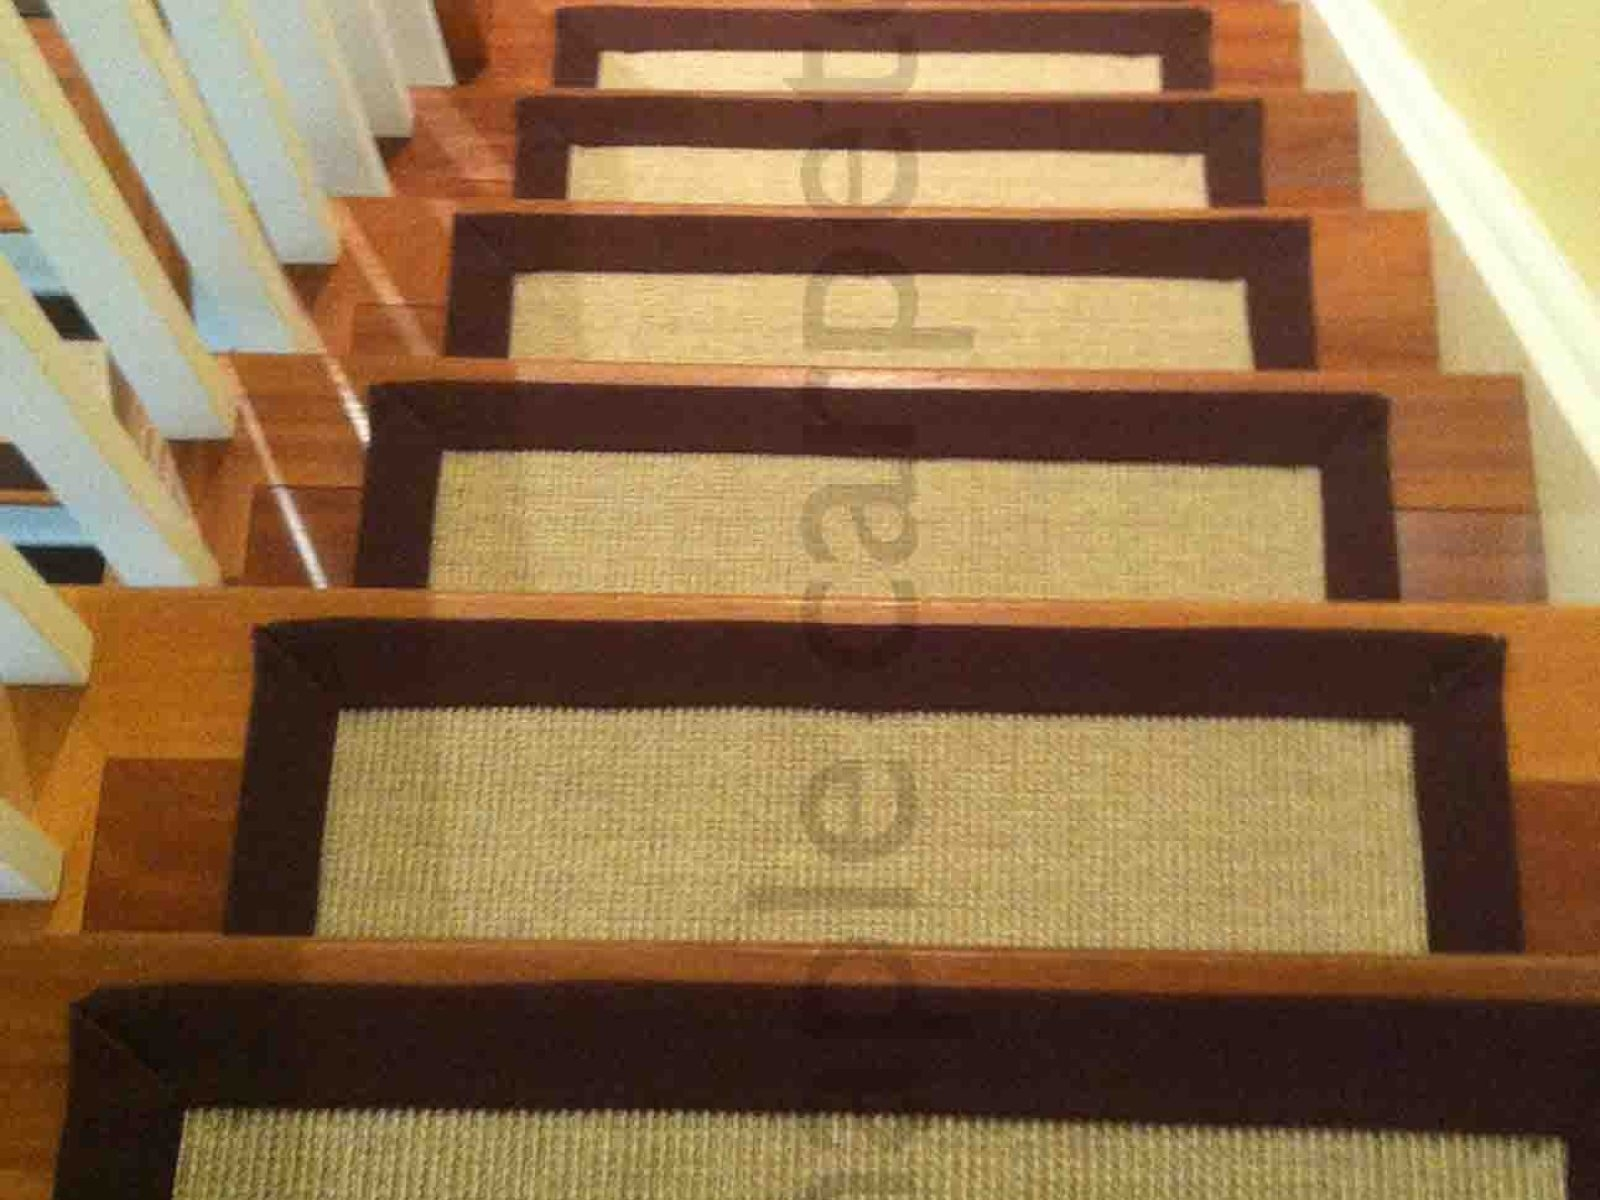 Stair Treads Carpet Popular Carpet Stair Treads Removing Carpet For Stair Tread Rug Holders (Image 10 of 15)